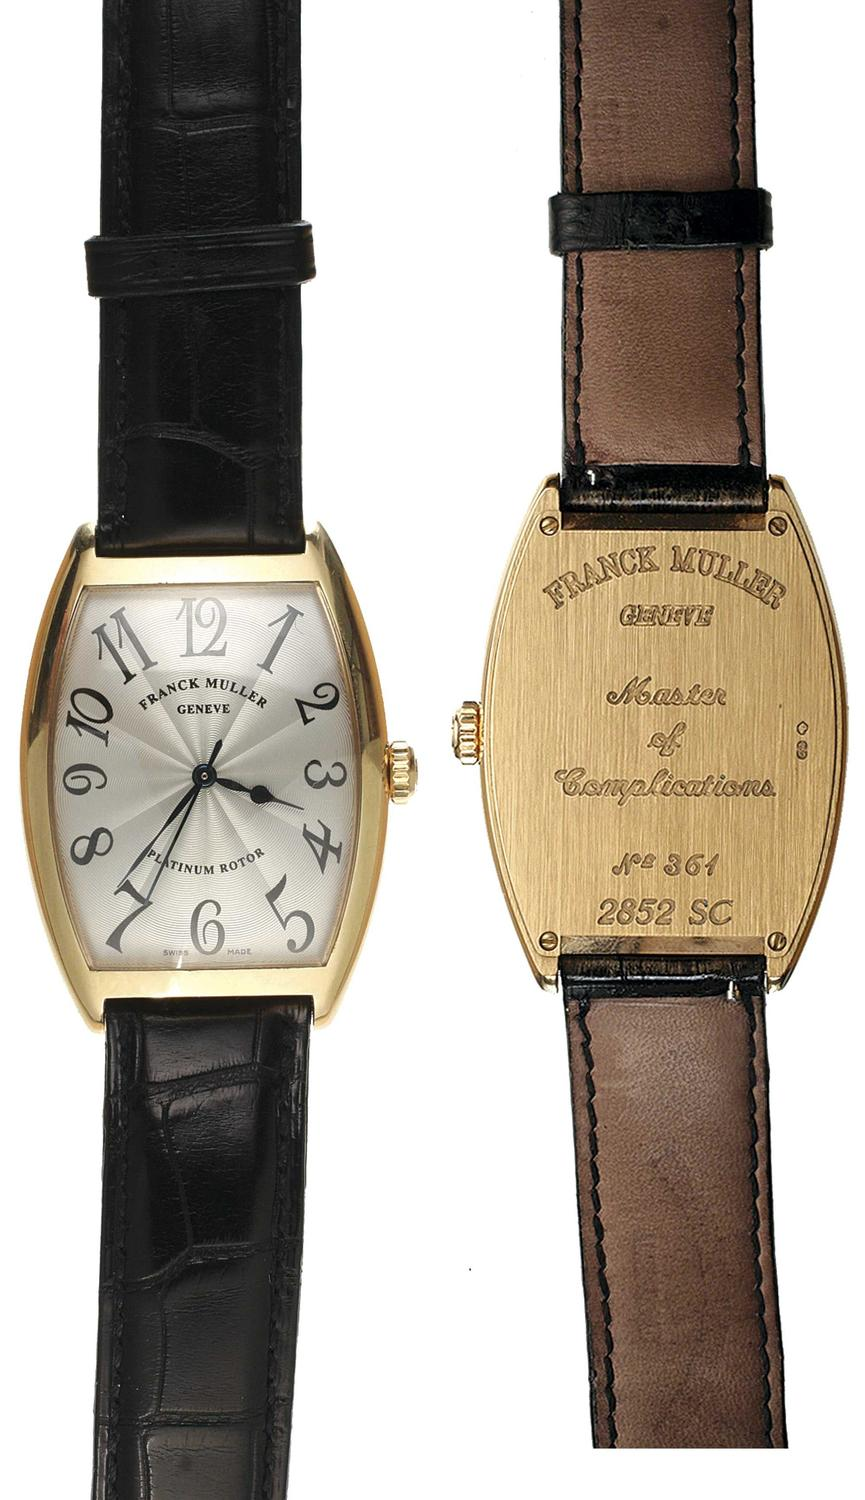 Numisbids Noble Numismatics Pty Ltd Auction 114 28 31 March 2017 Natural 100 Top Imperial Topaz 1427 Gents Wristwatch C1998 Franck Muller Cintree Curvex Casablanca Model 2852 Sc No 361 Automatic In 18ct Rose Gold